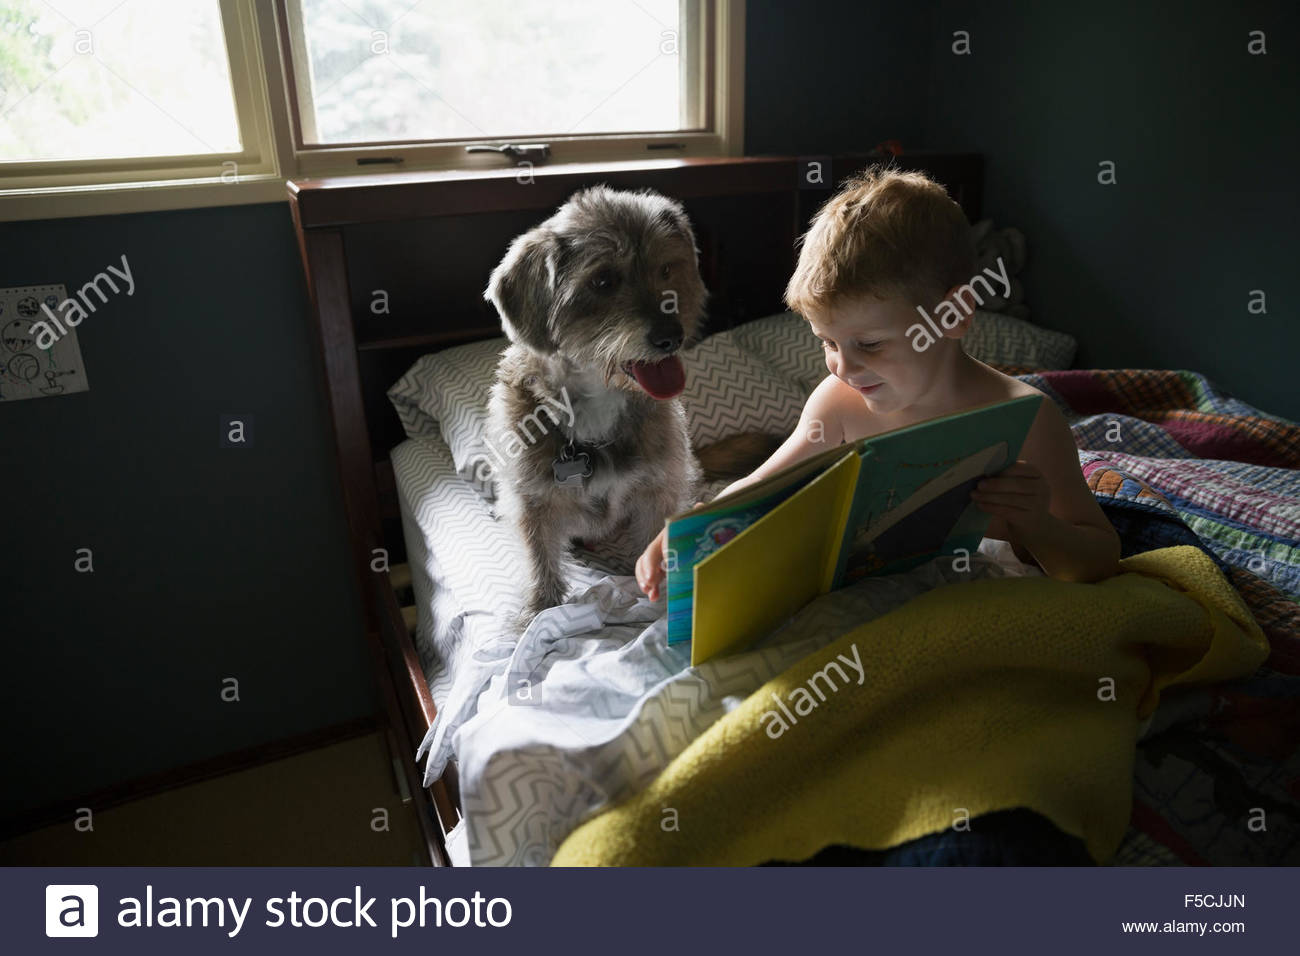 Boy reading book in bed with dog - Stock Image